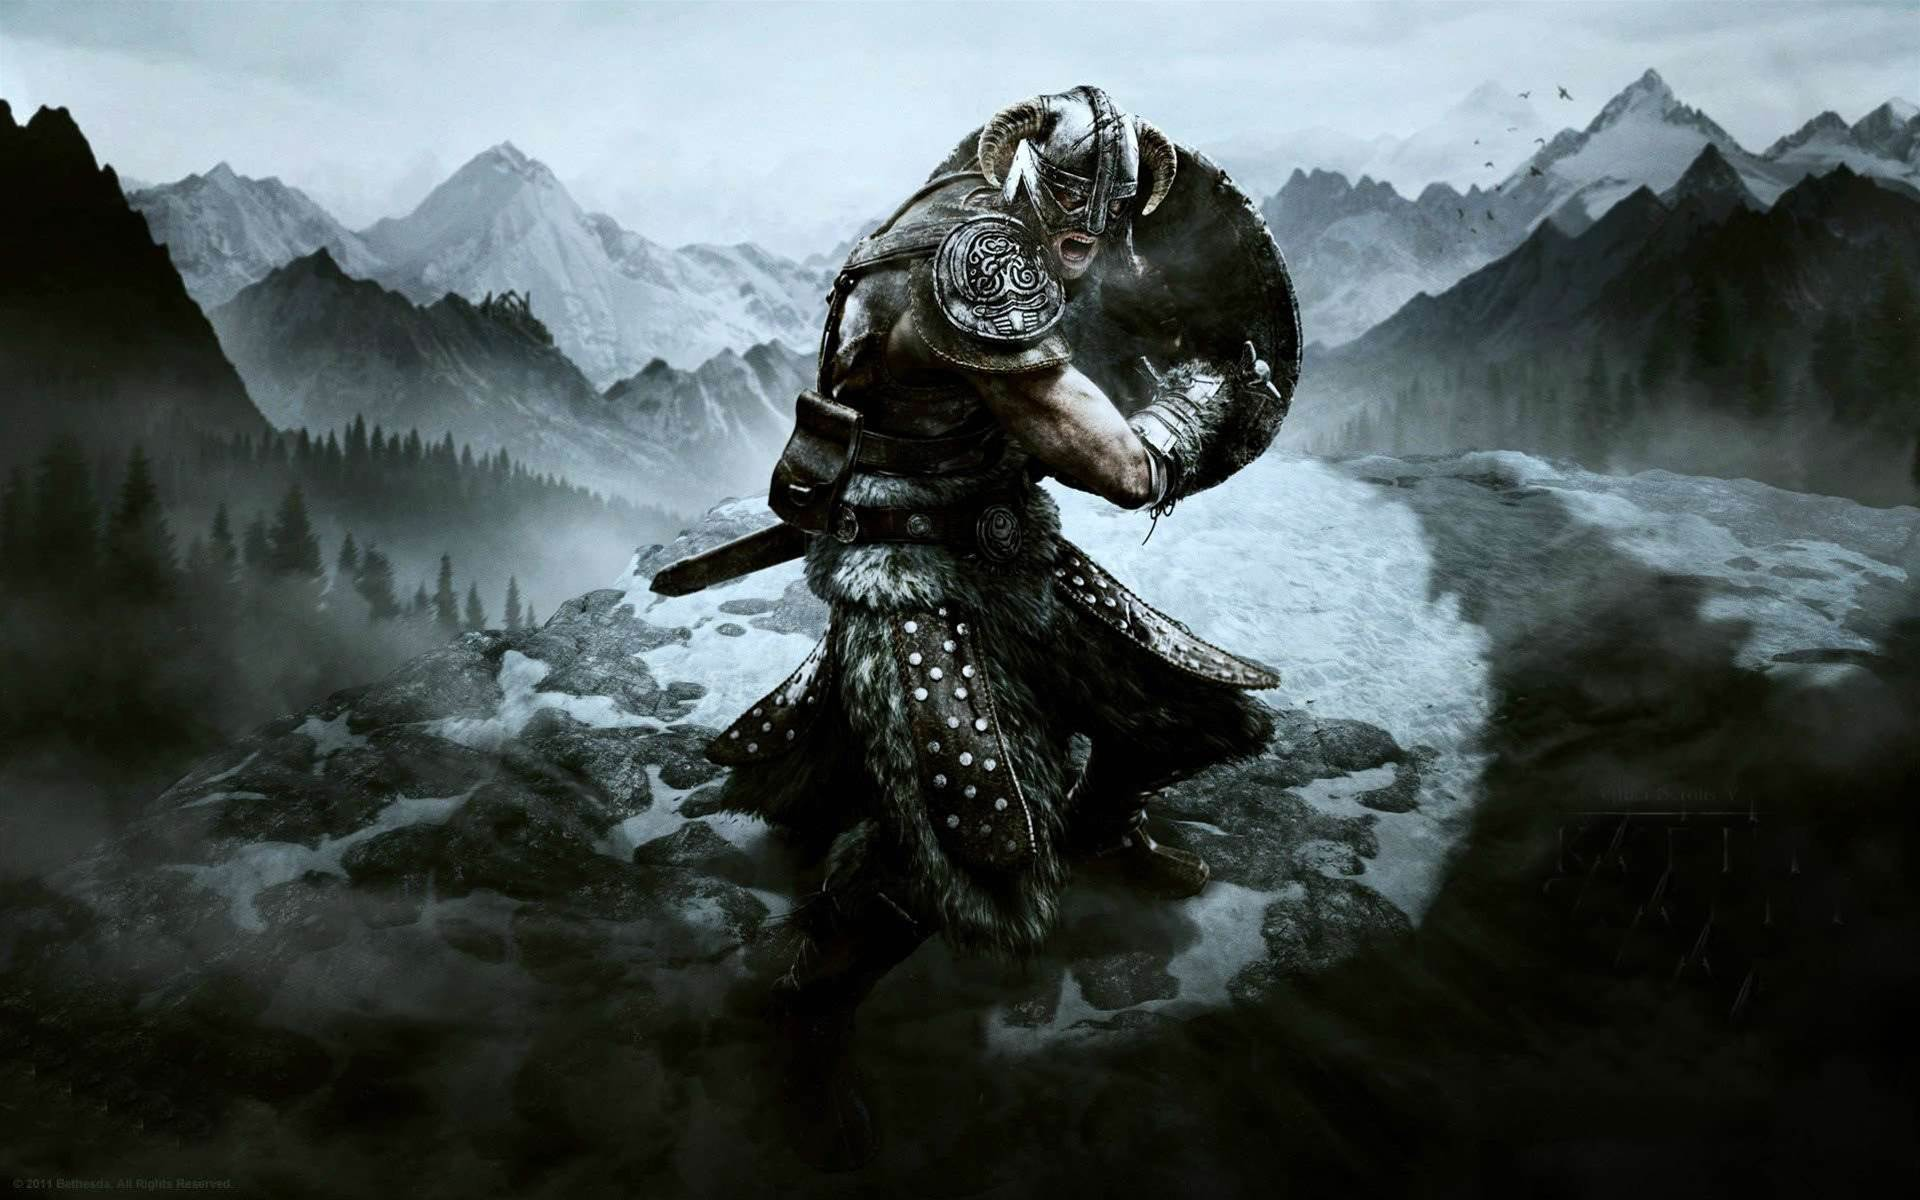 "<h2>Ten reasons you need to buy The Elder Scrolls V: Skyrim</h2>The Elder Scrolls V: Skyrim has finally landed, ending half a decade of anxious waiting. If you still haven't snapped up a copy of the game, here are ten reasons why it's worth its weight in Septim coins... <br><br> <b>See also:<br> <a href=""http://www.pcauthority.com.au/Gallery/251590,the-20-most-memorable-video-game-worlds.aspx/1"" target=""_blank"">The 20 most memorable video game worlds</a><br> <a href=""http://www.pcauthority.com.au/Gallery/279957,top-25-fantasy-games-of-all-time.aspx/1"" target=""_blank"">Top 25 fantasy games of all time</a><br> <a href=""http://www.pcauthority.com.au/Gallery/278451,halloween-special-top-10-scariest-games.aspx/1"" target=""_blank"">Top 10 scariest games</a>"